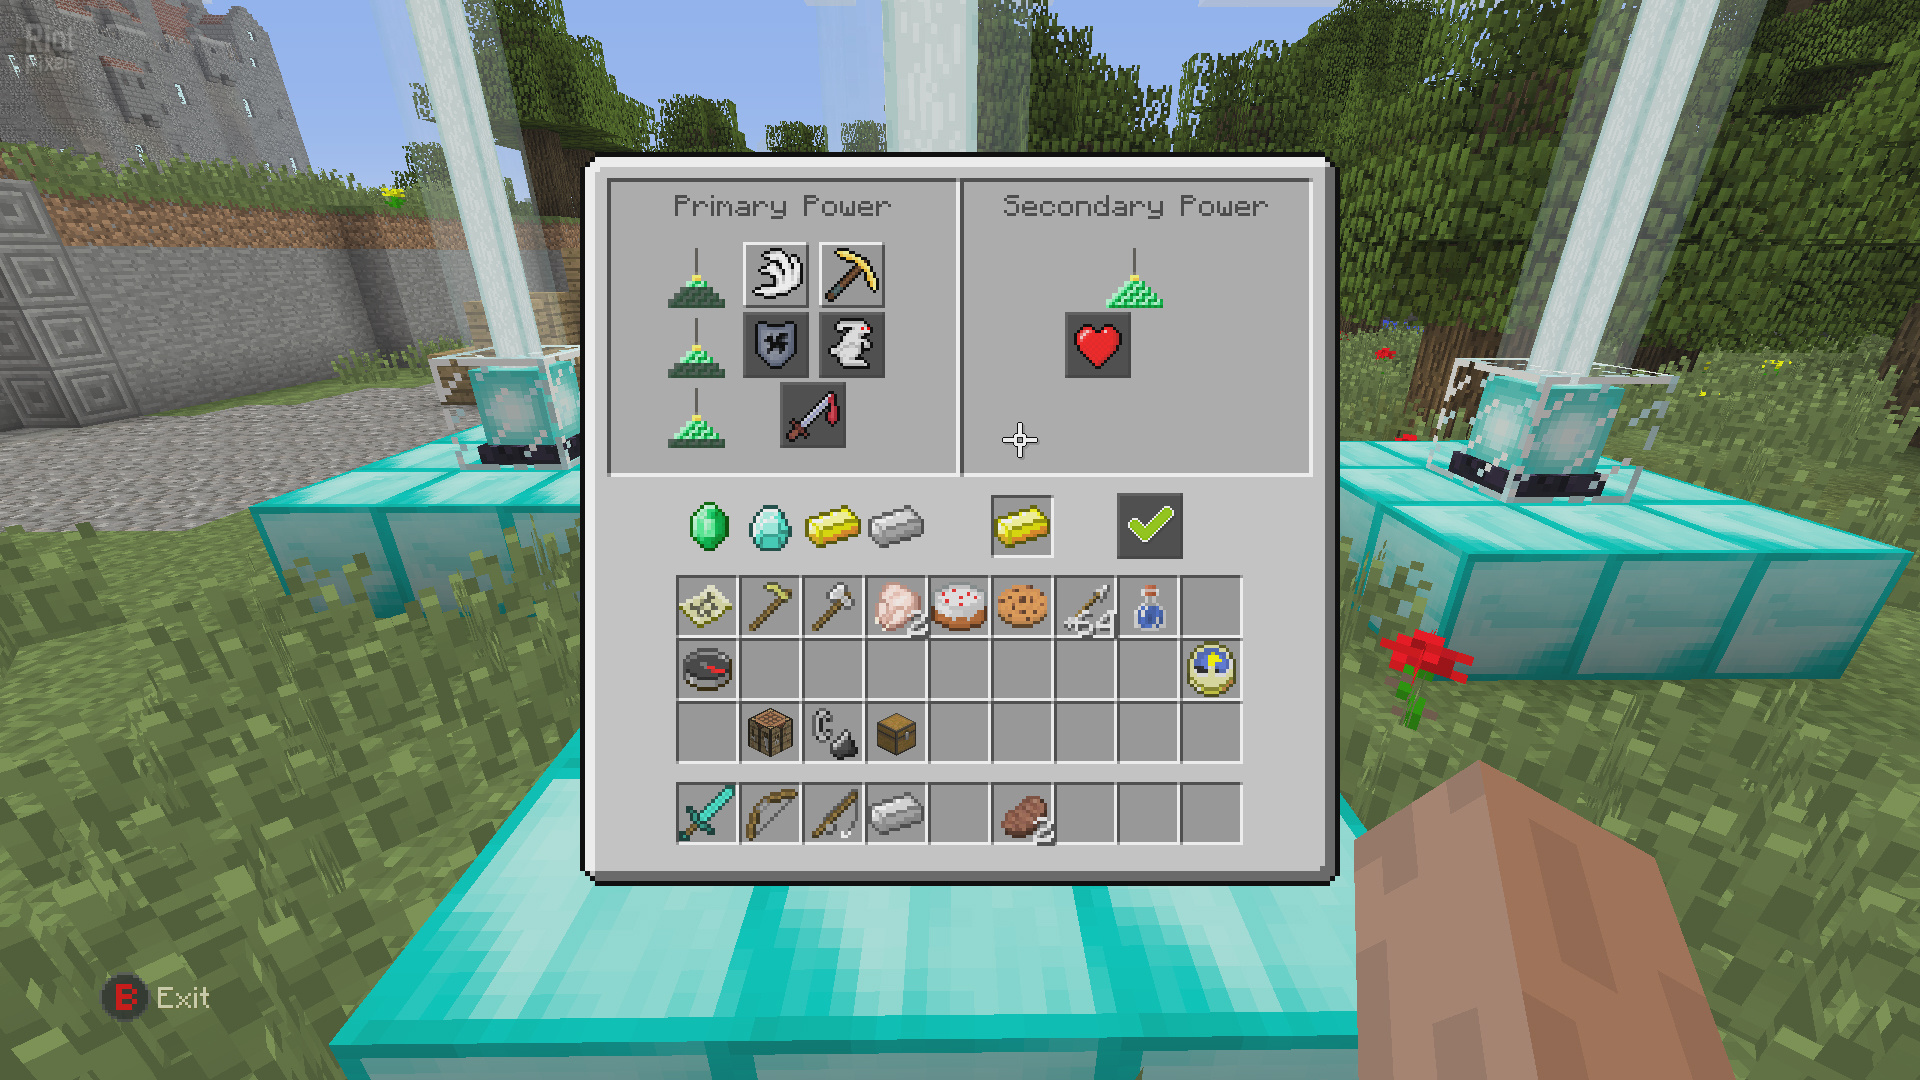 Horse Armor Minecraft Recipe how to make horse armor on minecraft xbox 360 - pictures of horses